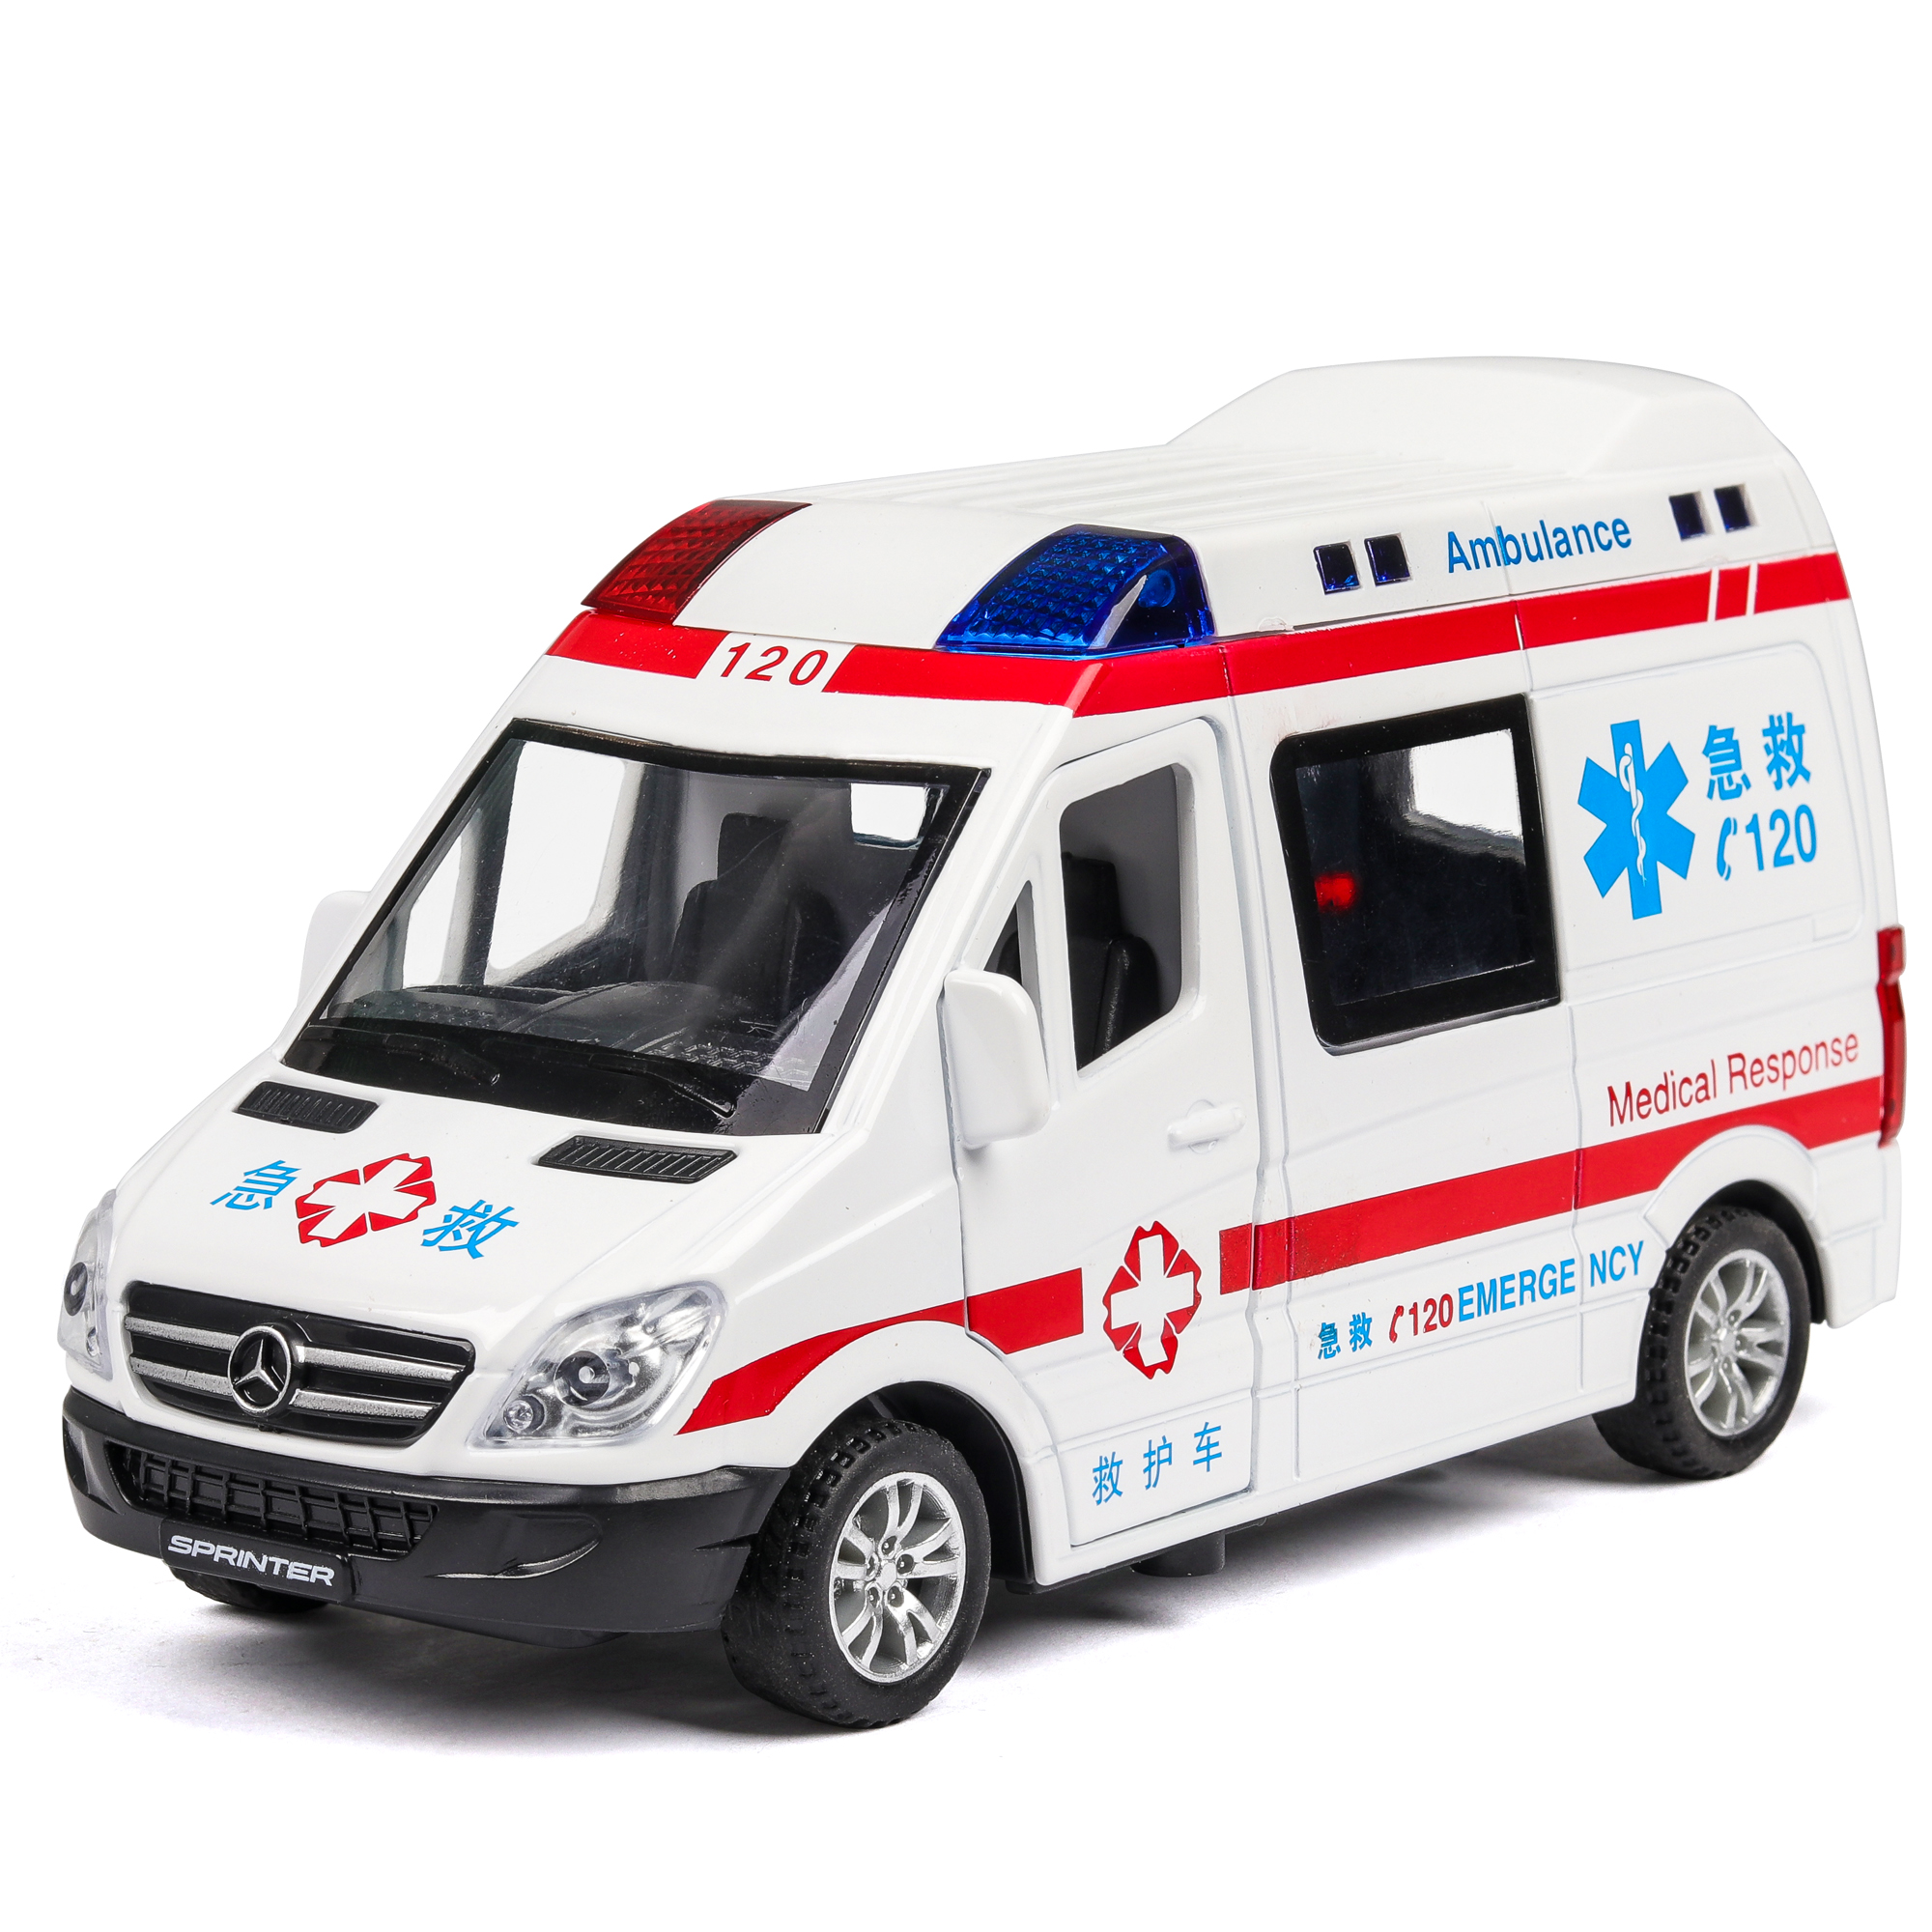 1 32 Hospital Rescue Ambulance Fire truck Express Metal Cars Model Pull Back Sound and Light Alloy Diecast car toys for children in Diecasts Toy Vehicles from Toys Hobbies